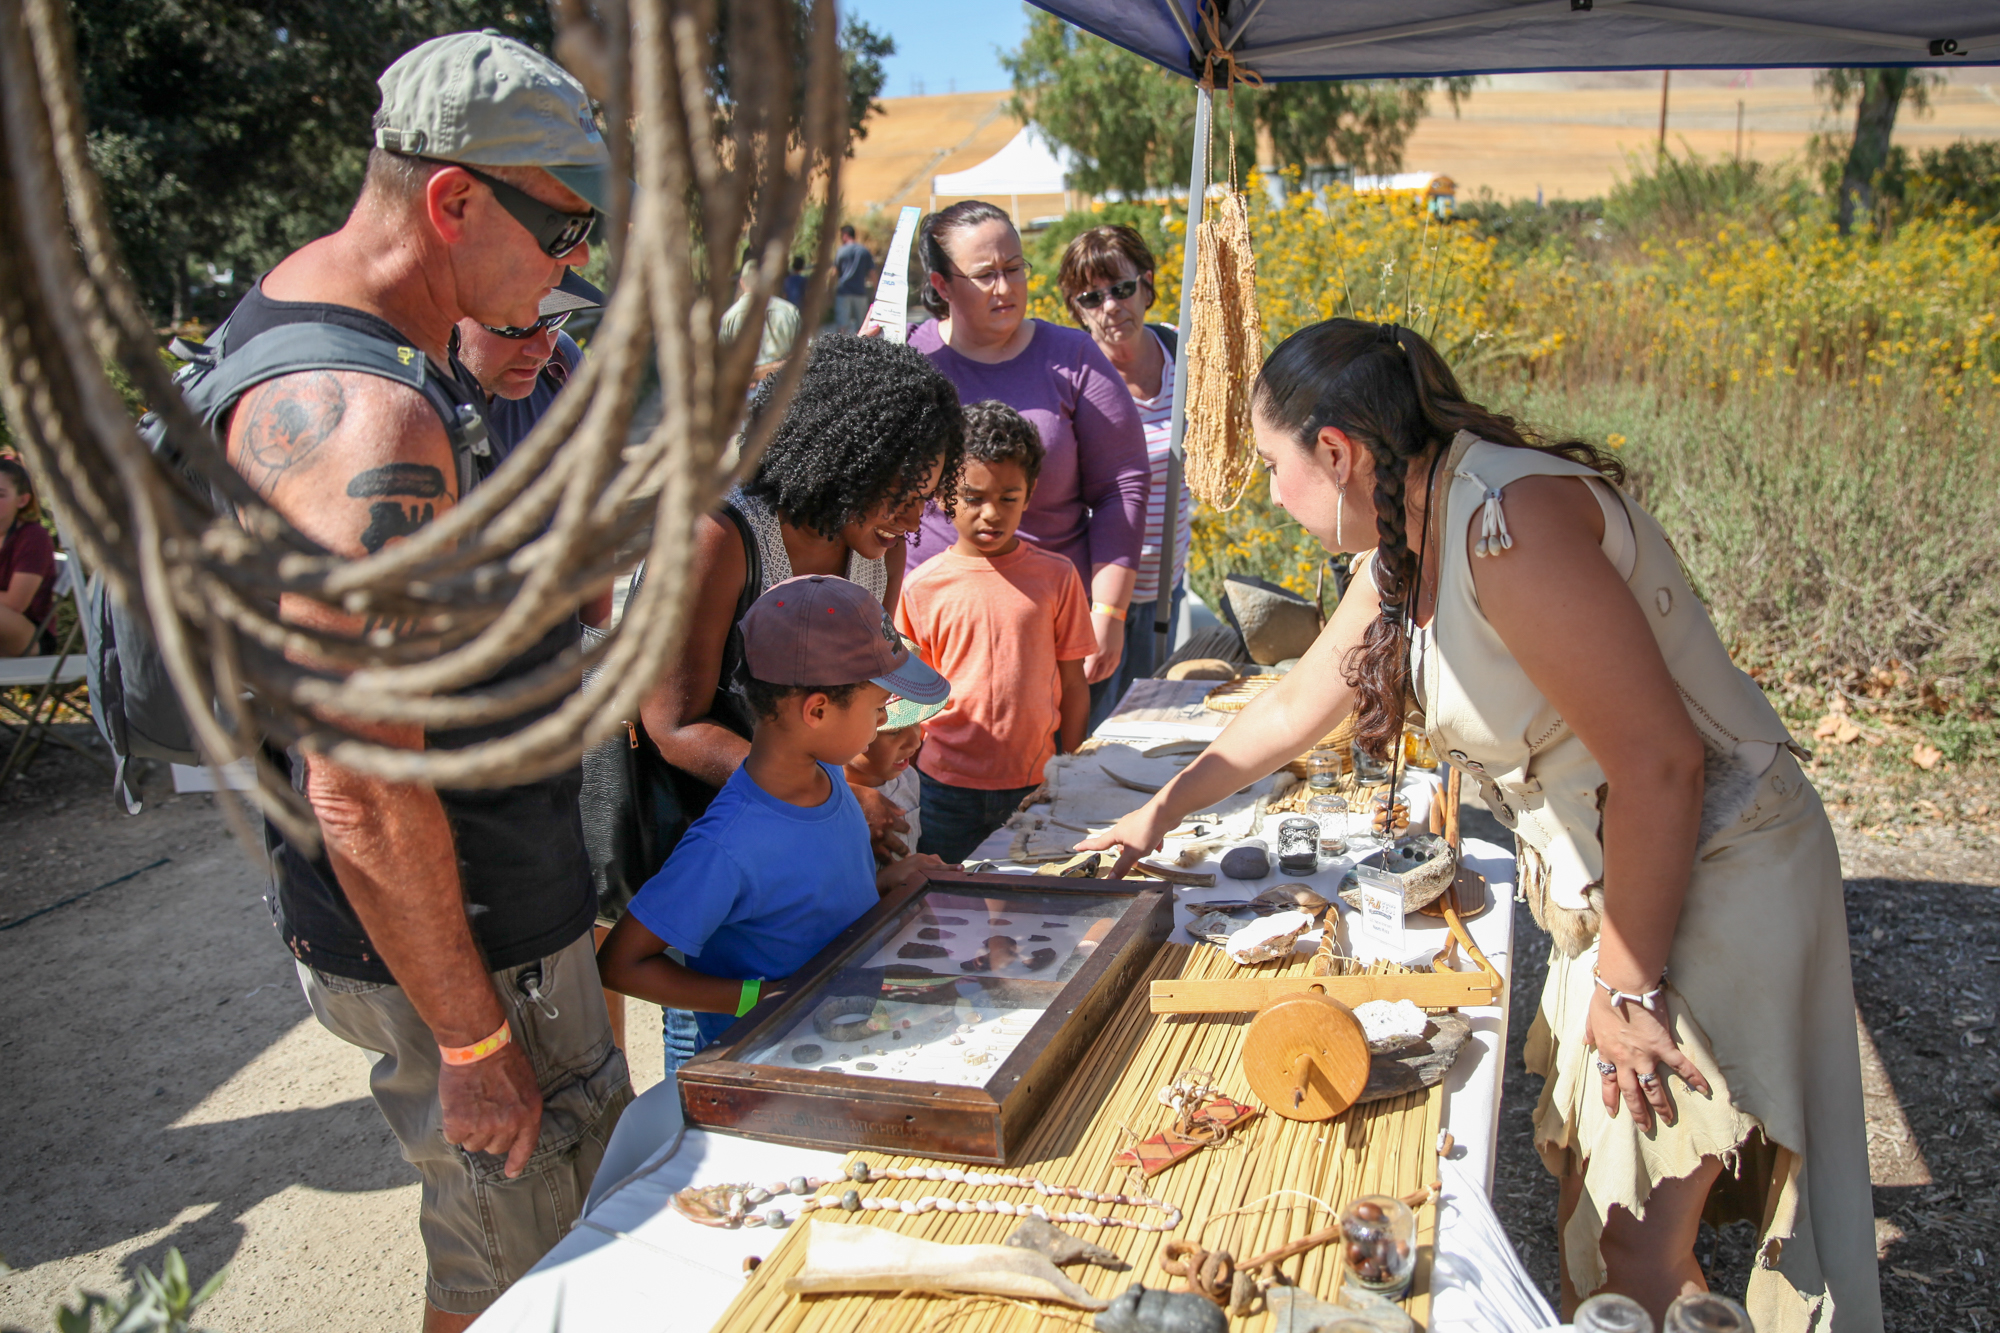 Naomi Knox, of the Juaneño Band of Mission Indians, Acjachemen Nation, tells visitors about the tribe's artifacts on display from the Blas Aguilar Museum. Photo: Allison Jarrell